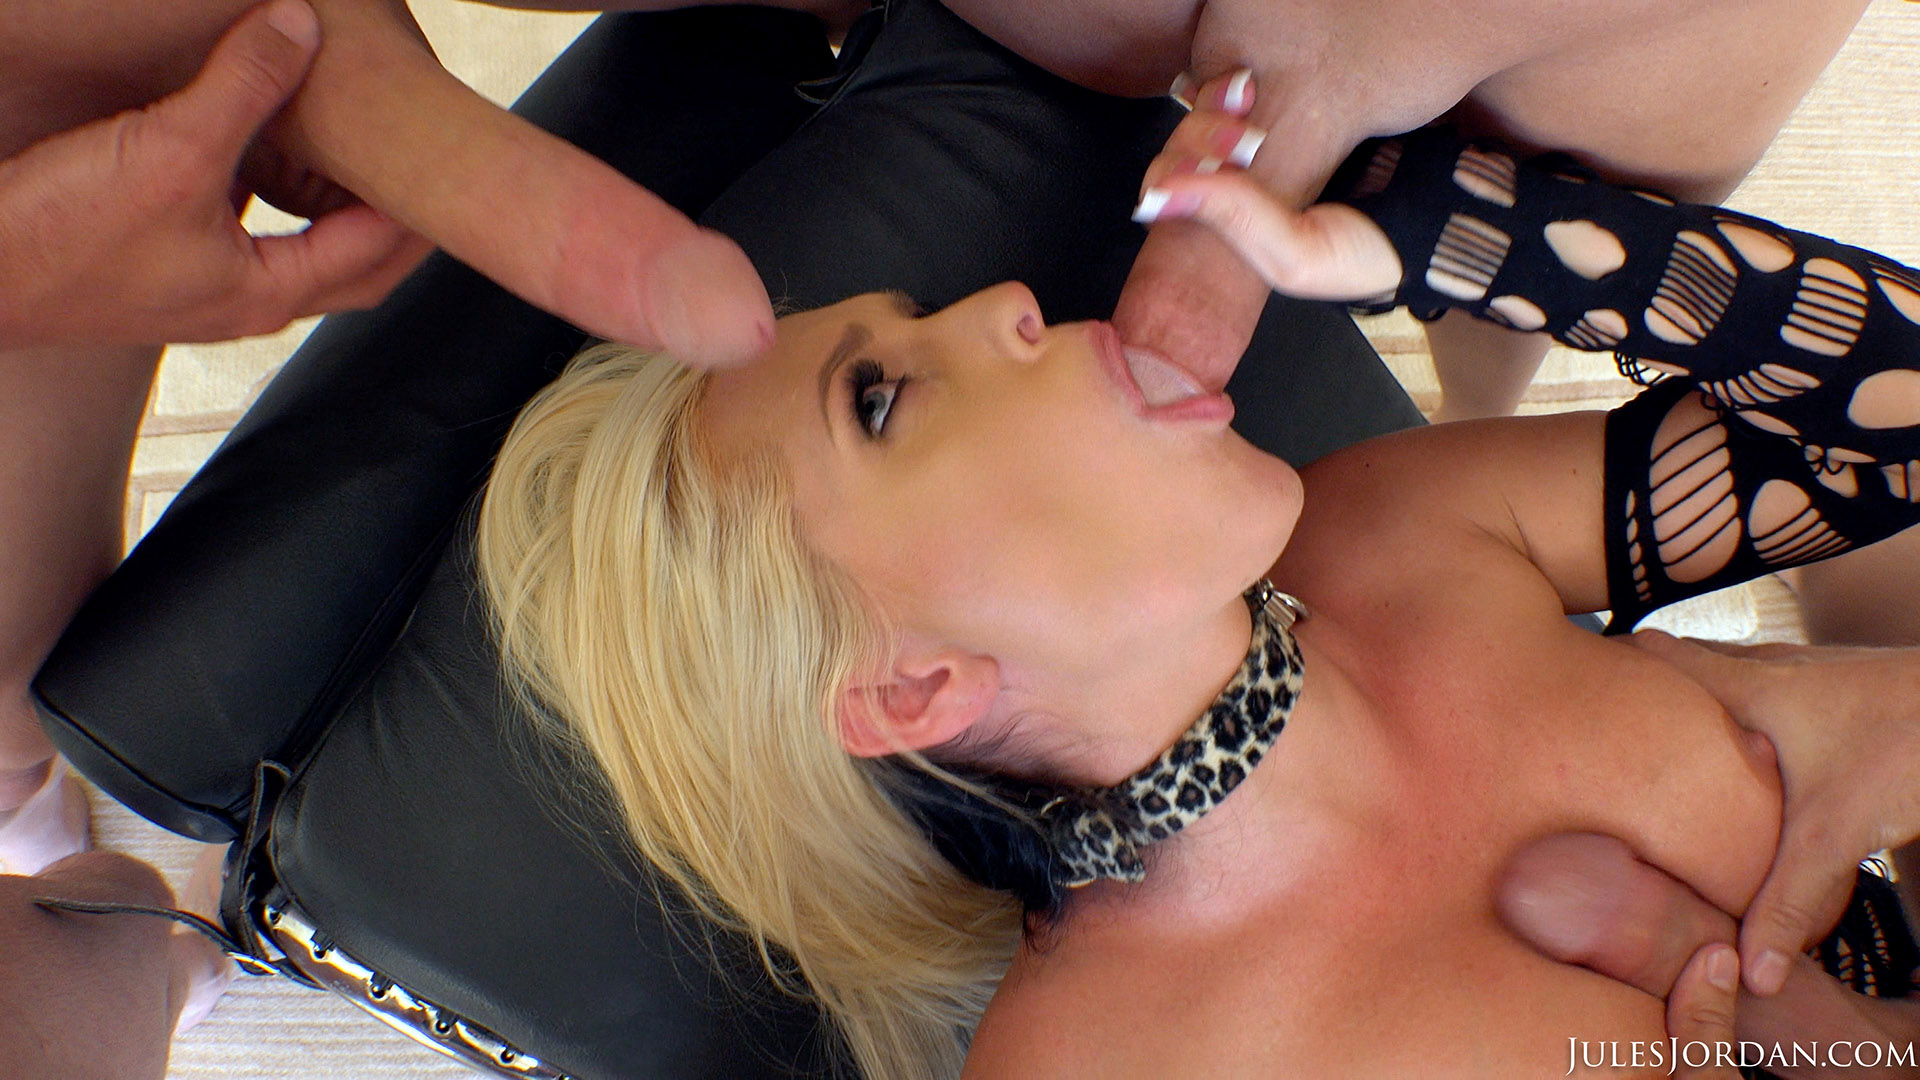 Mouth full of cream for a muscle diva - 1 part 3